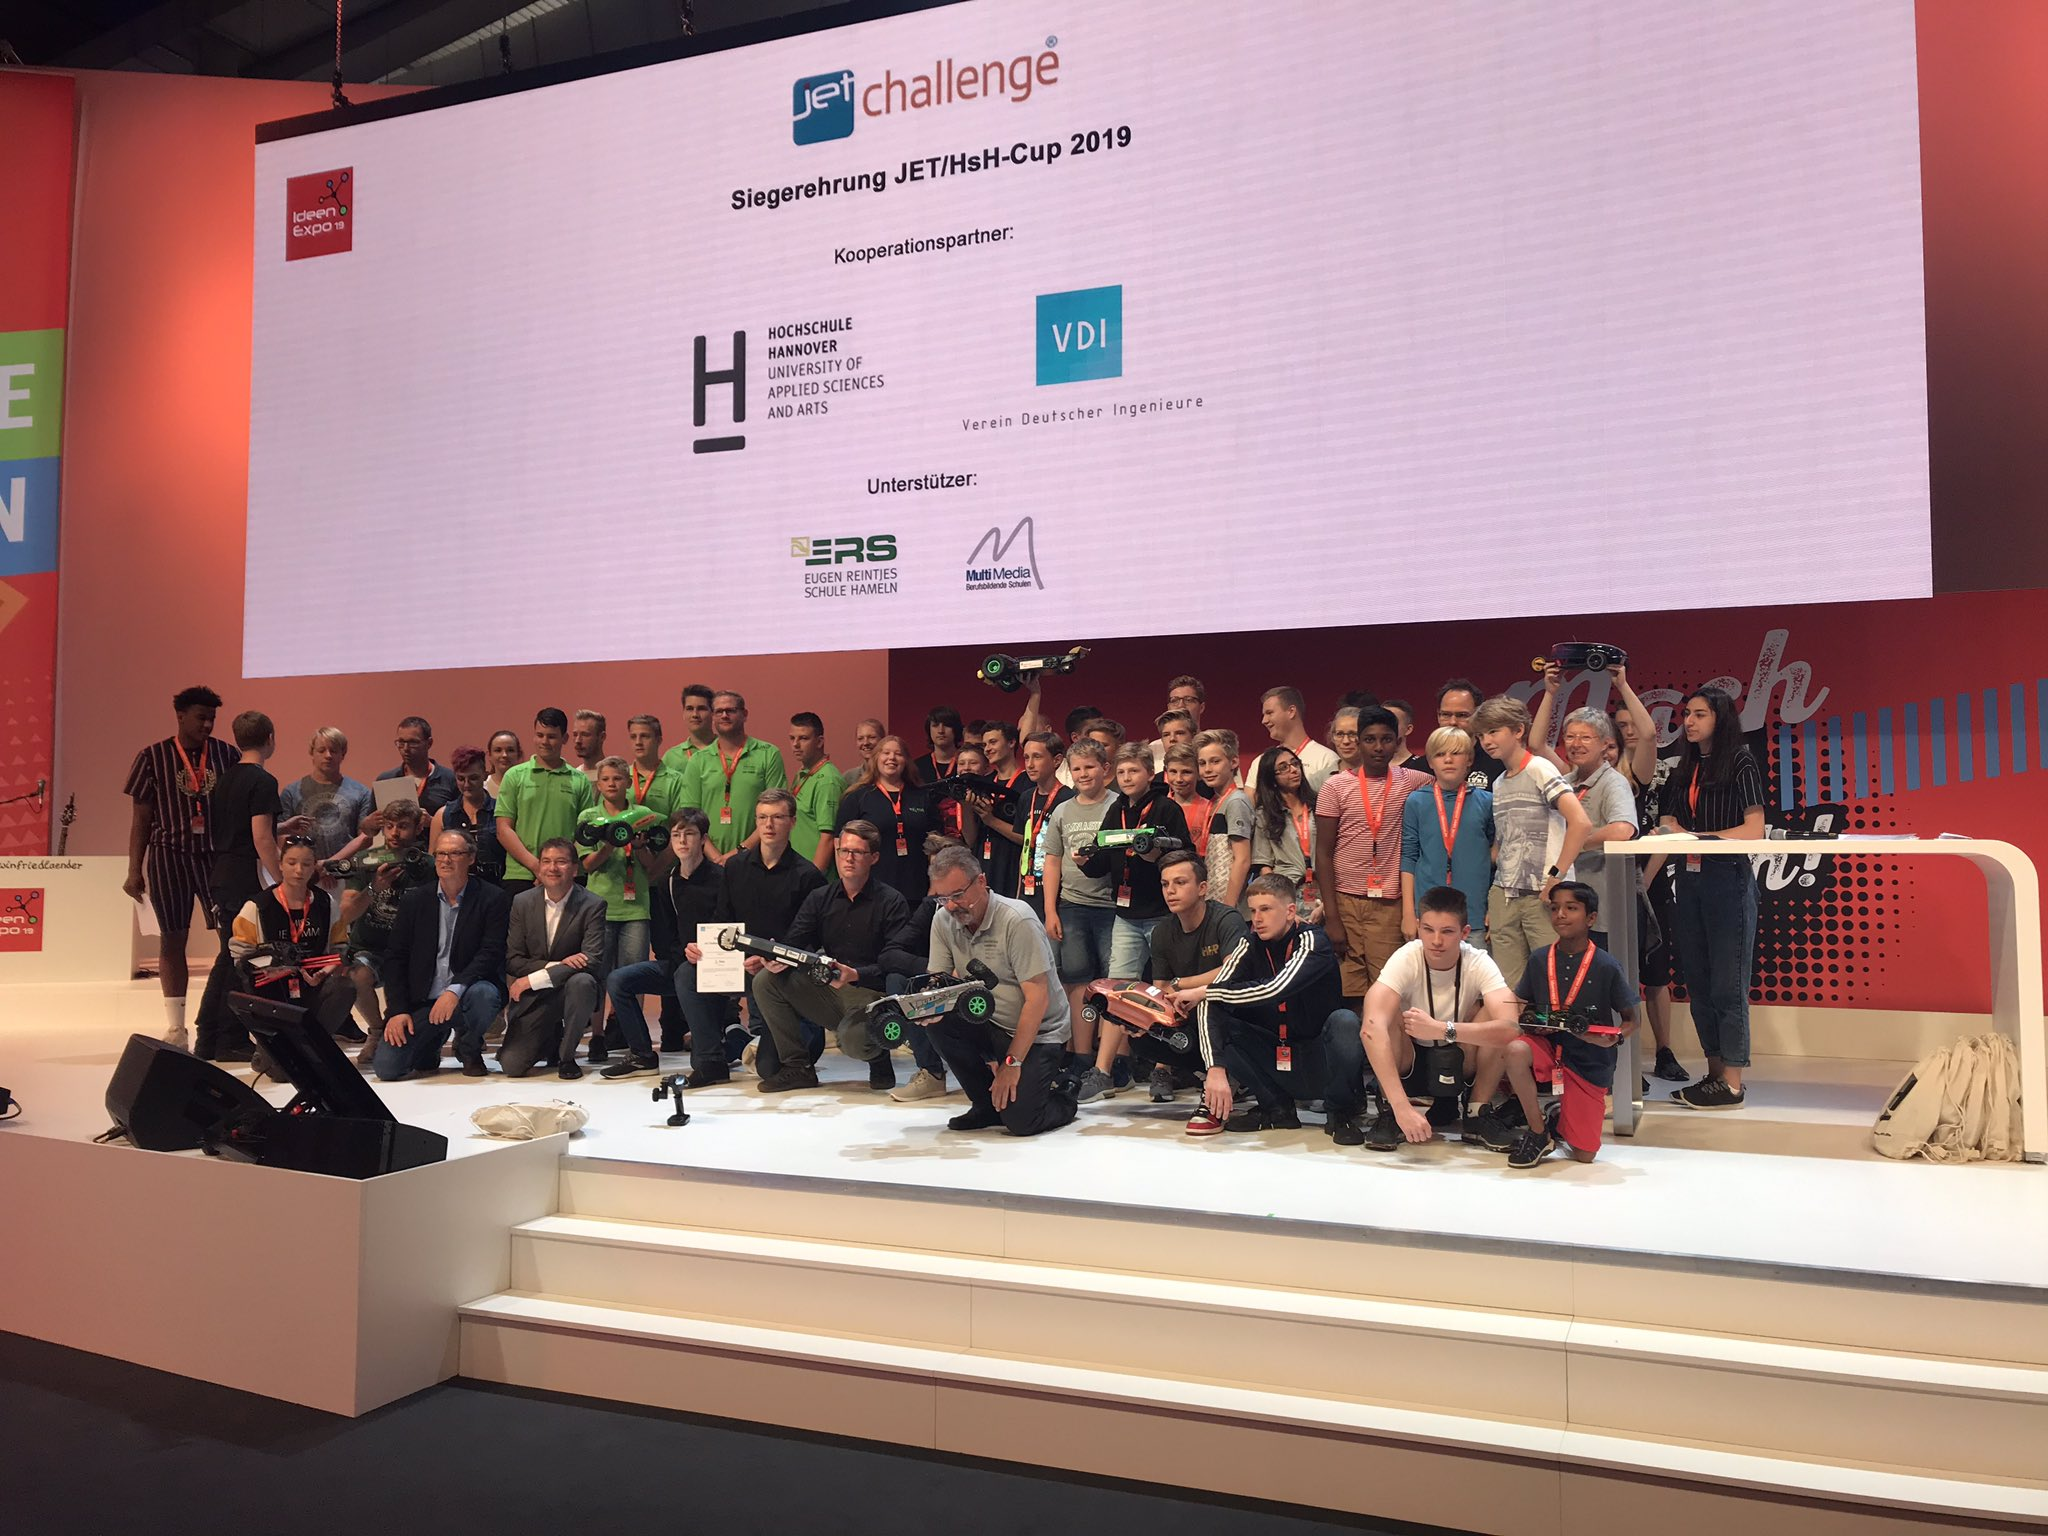 Rachel Hovington On Twitter Hochschulehannover Applied Sciences And Arts Jetchallenge Ishrlearns Students Ideenexpo Award Ceremony N3thelp Https T Co Fcemi4wyb3